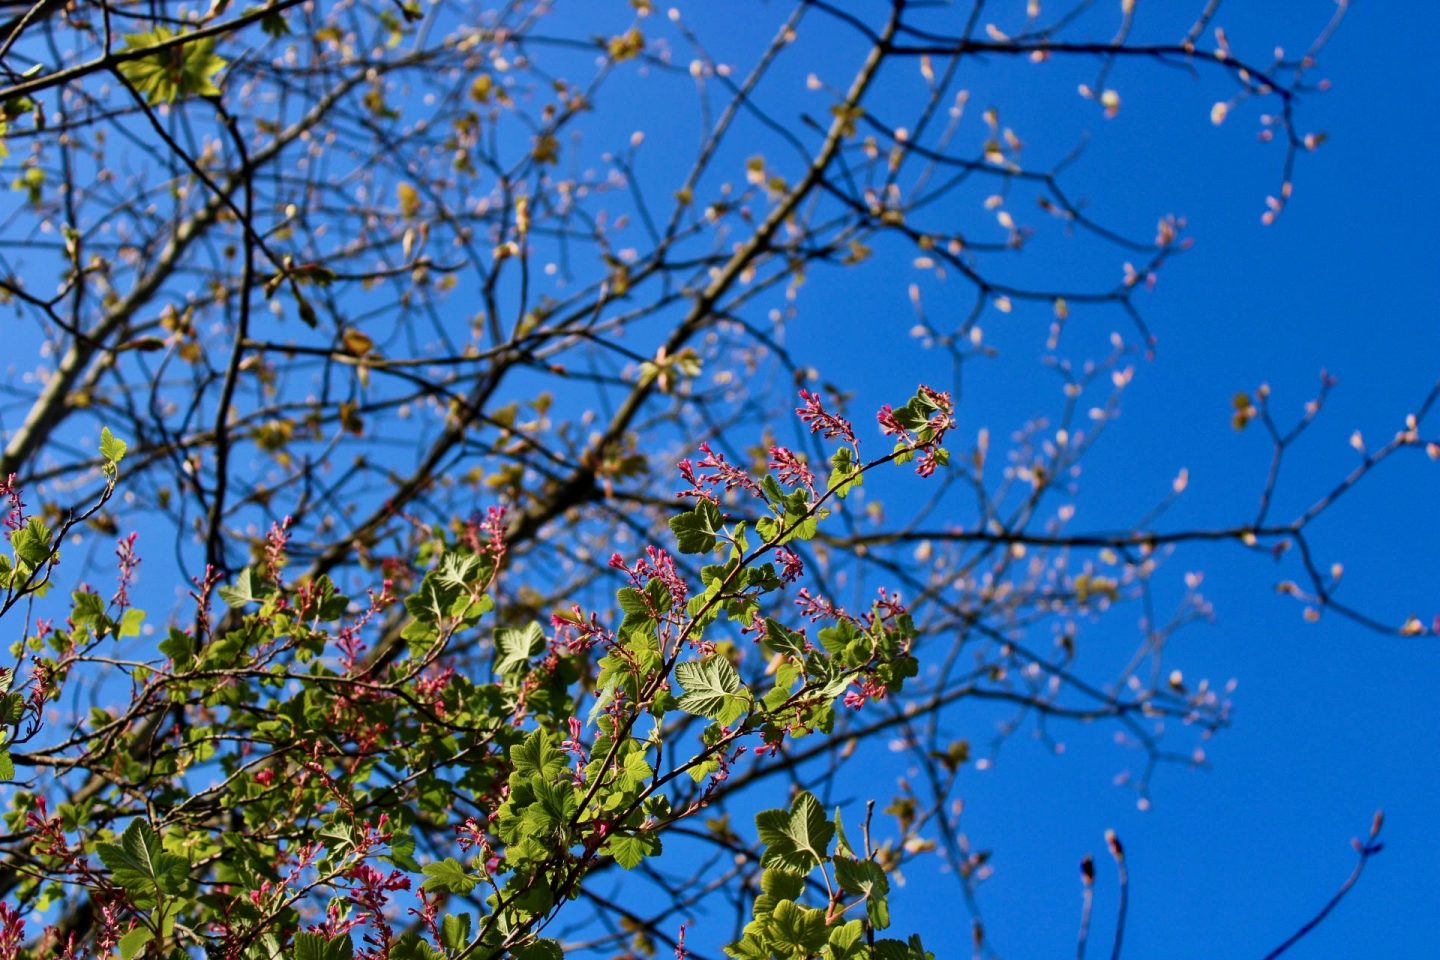 Daily lockdown exercise walk: colourful blossom against a very bright blue sky